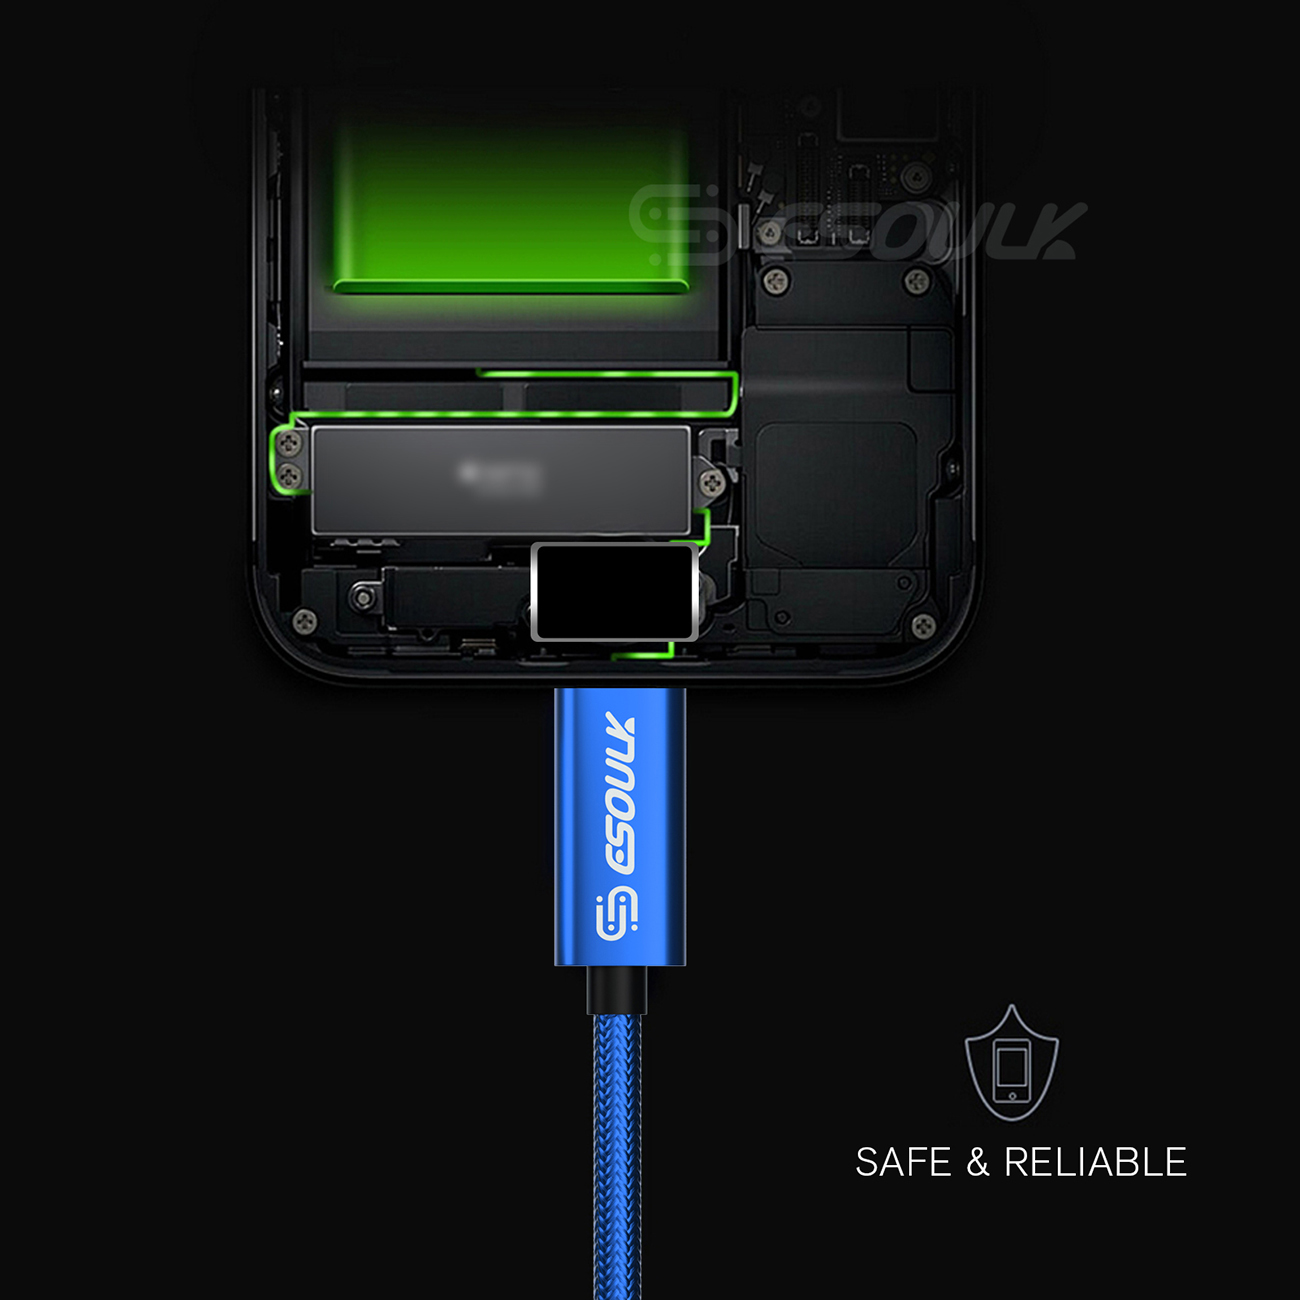 Esoulk 1.7A 10FT USB Cable For Type-C In Blue